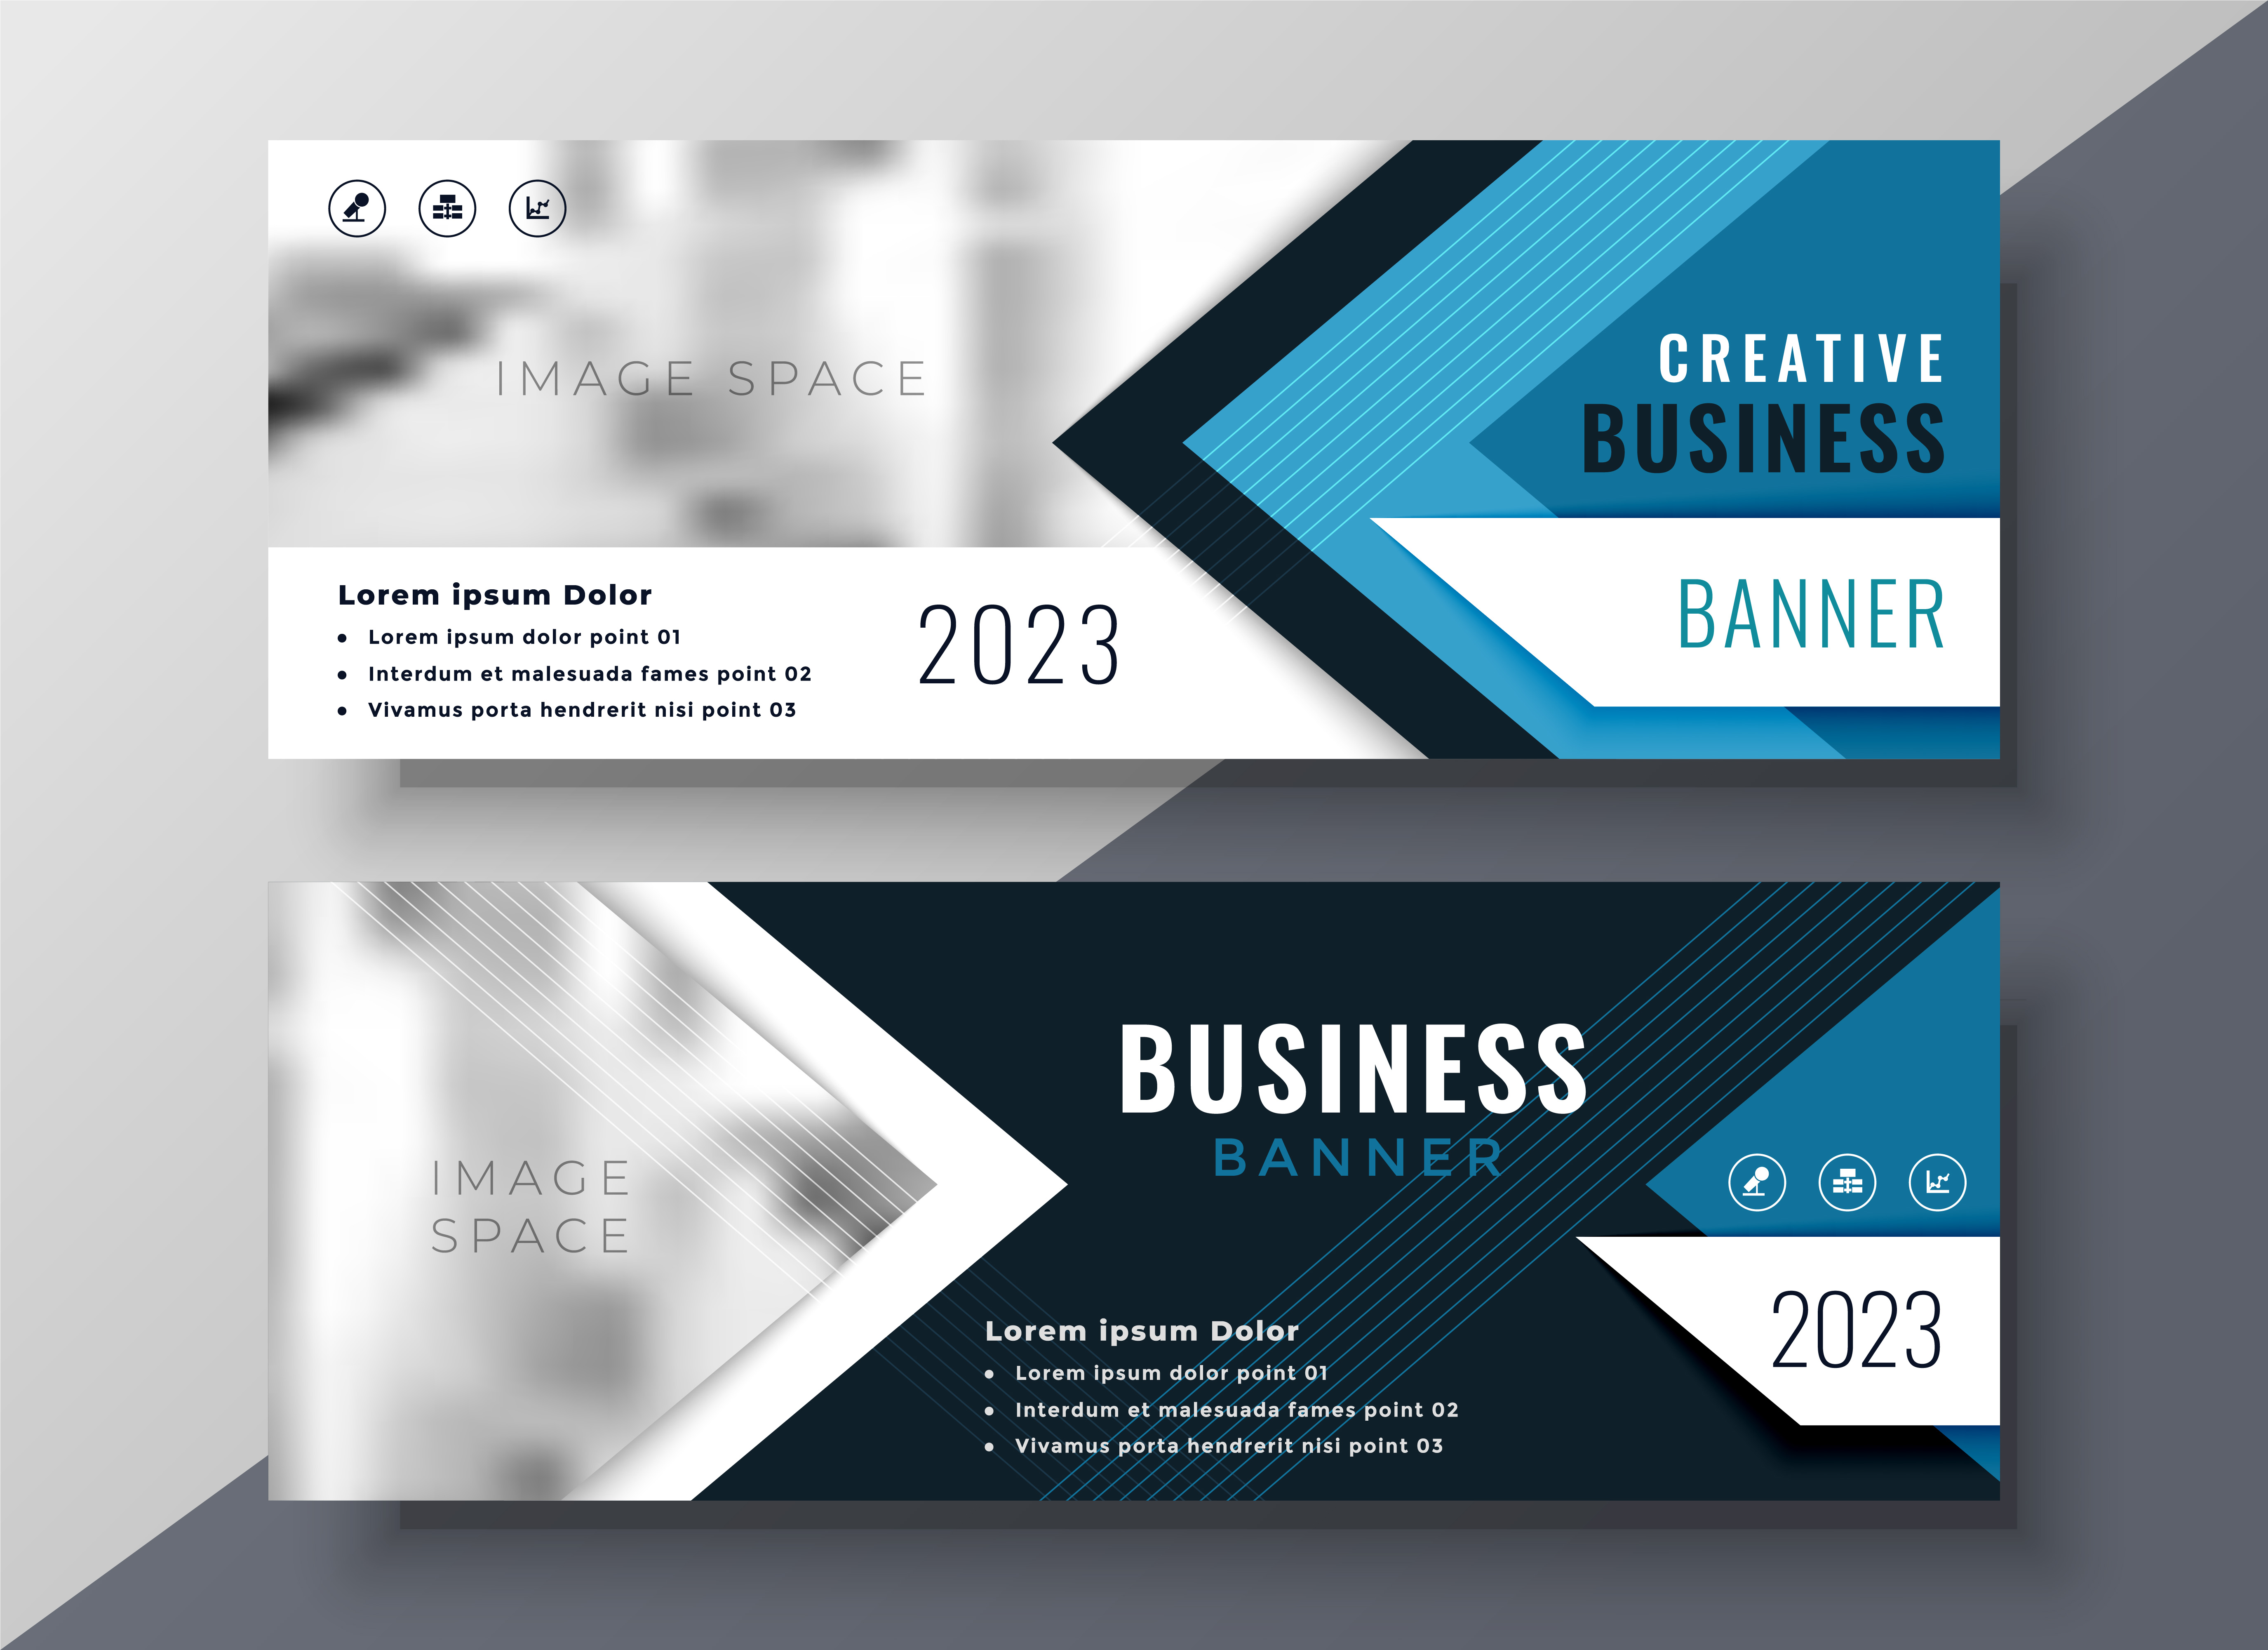 Banner: Professional Business Banner In Geometric Style